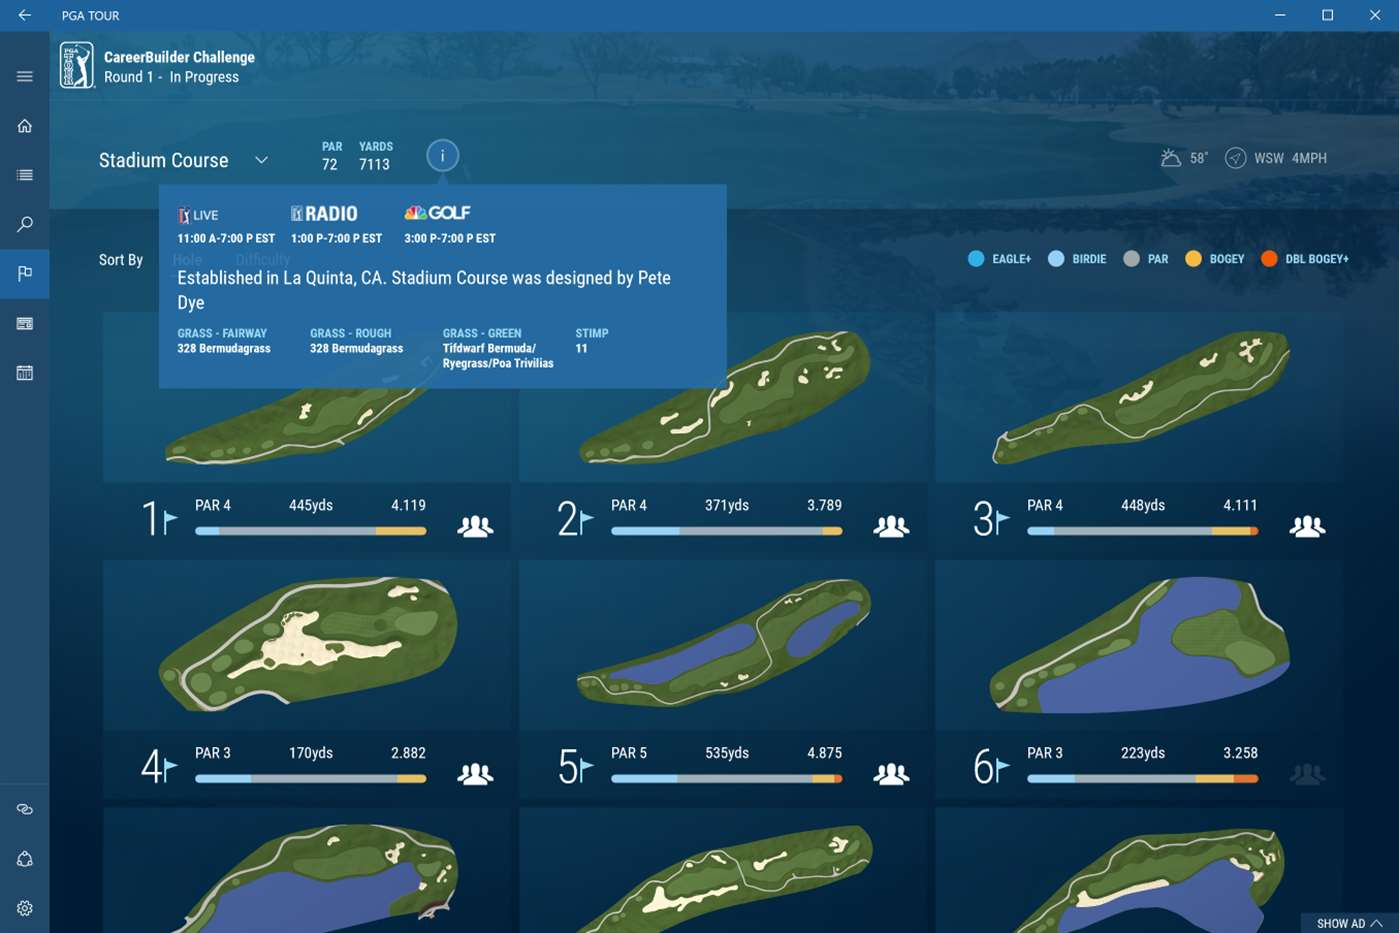 Enjoy The PGA Tour With New Windows 10 App